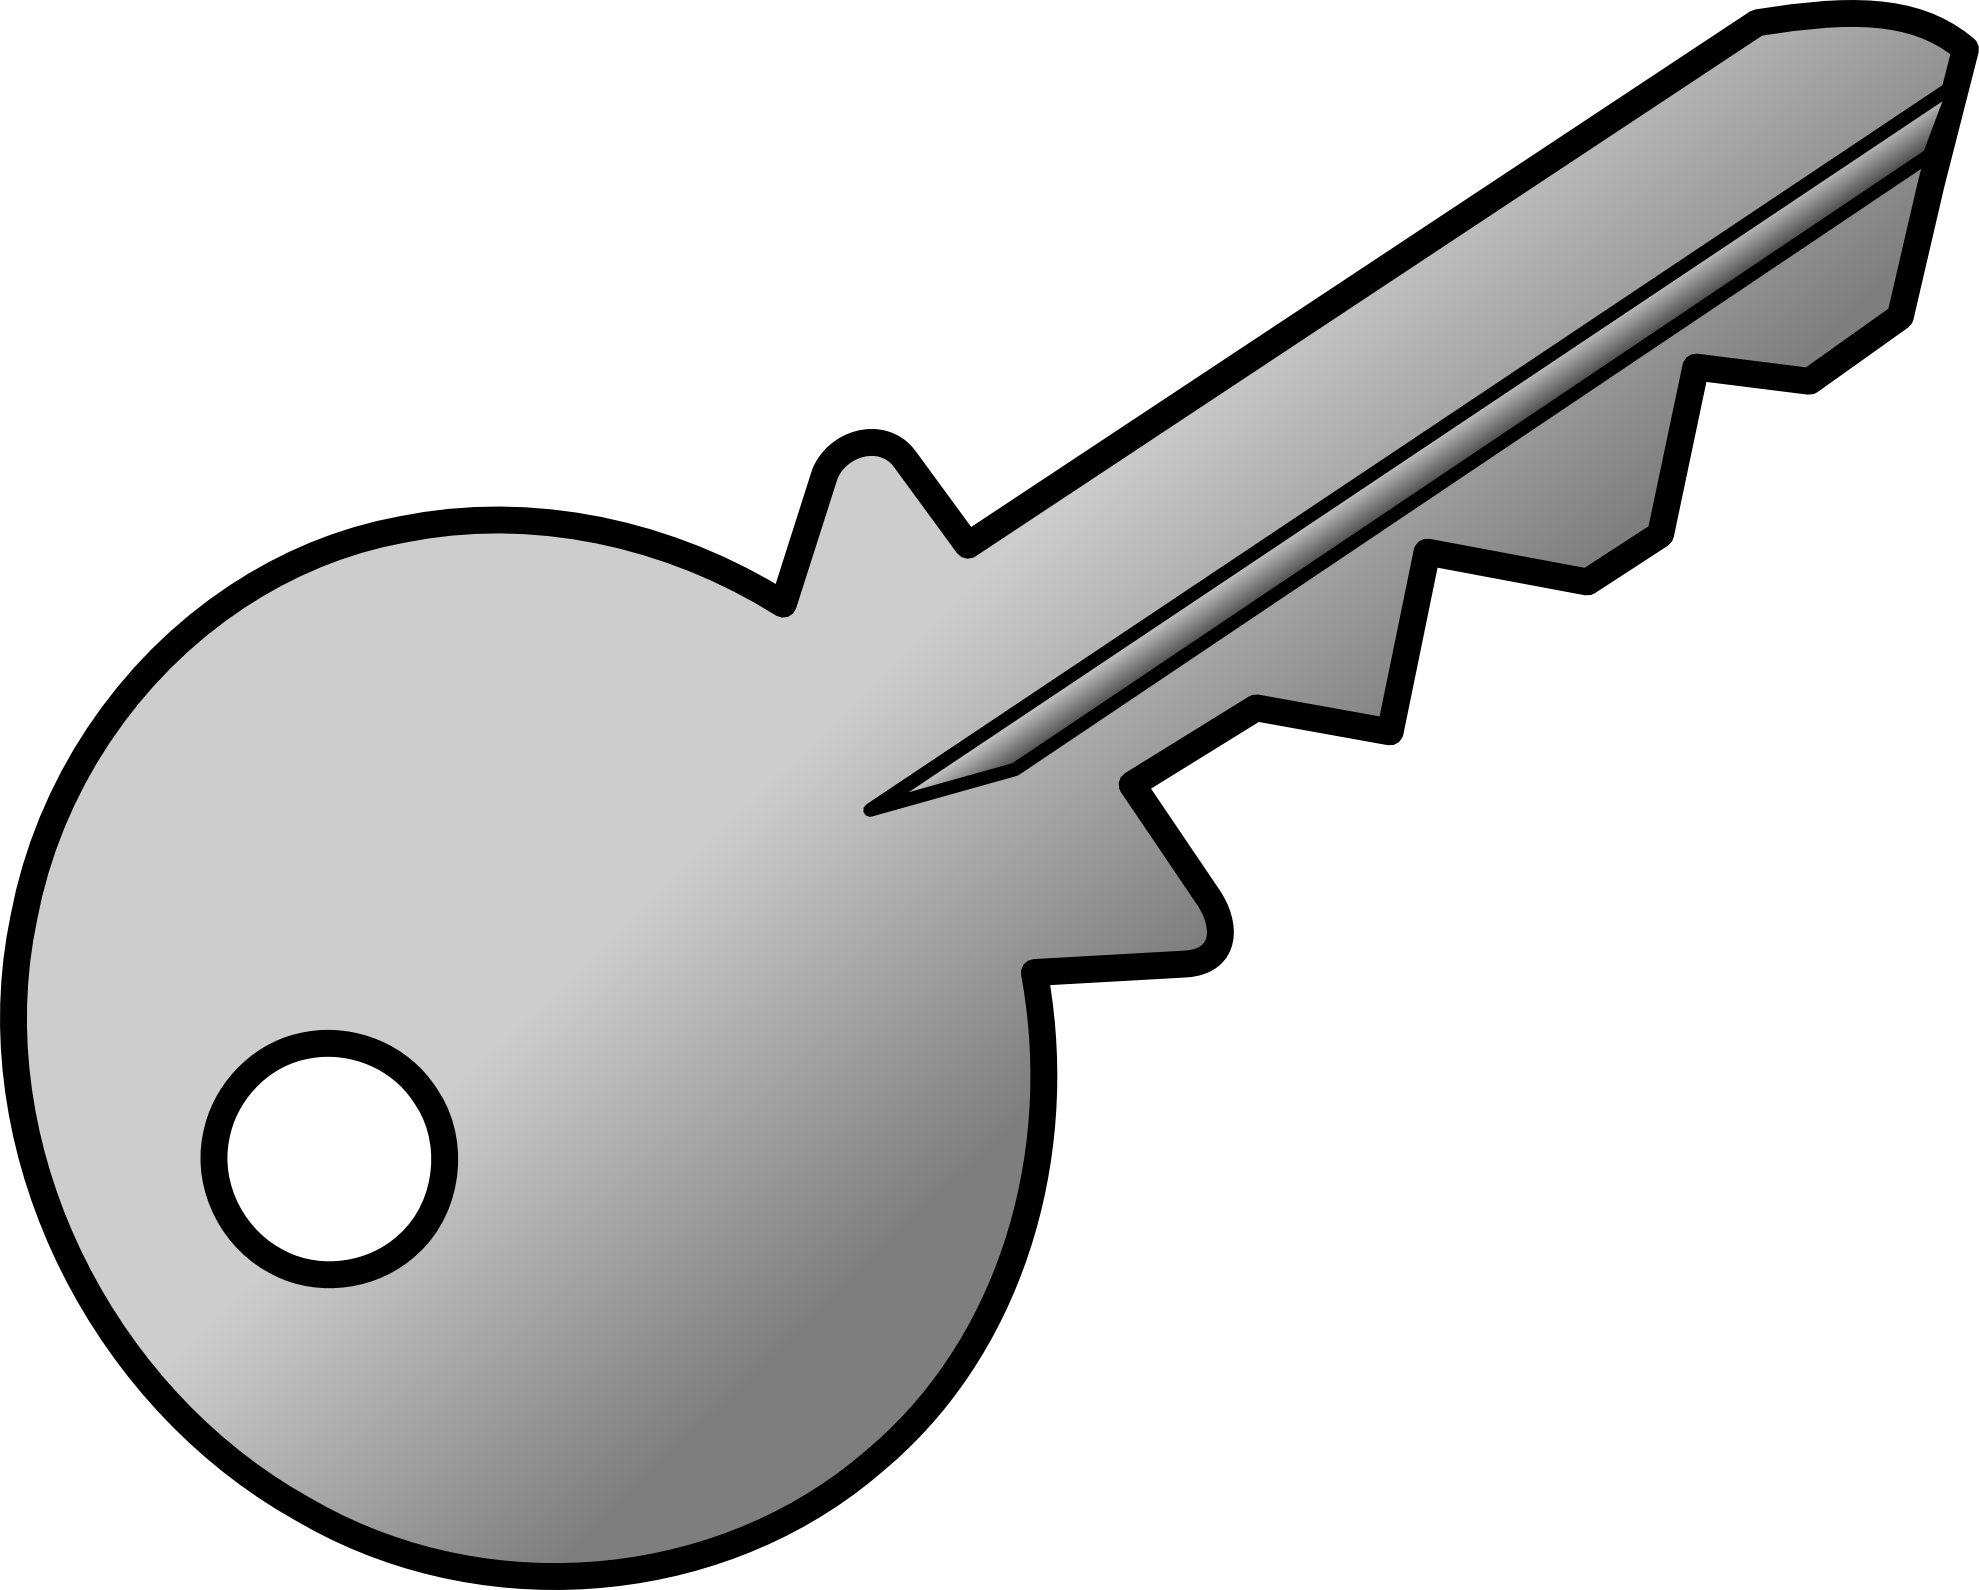 Clipart Key Black And White